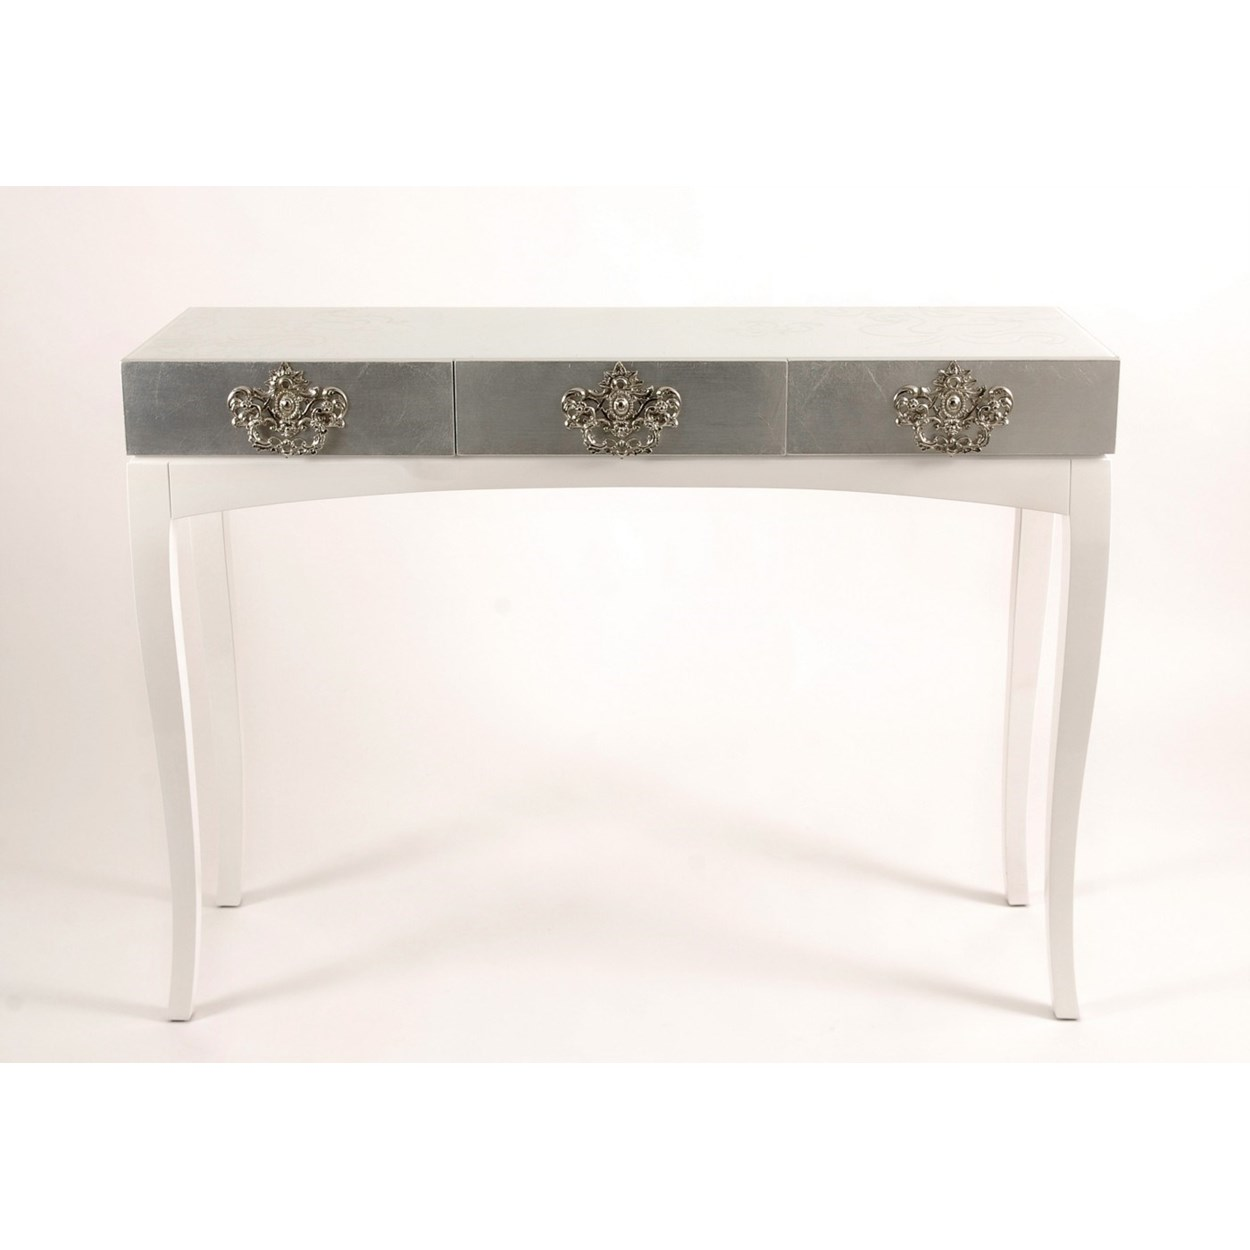 silver leaf accent table console elegant black glass box with floral etched accents encases three drawers brass hardware hand crafted wood legs long thin pottery barn teen floor